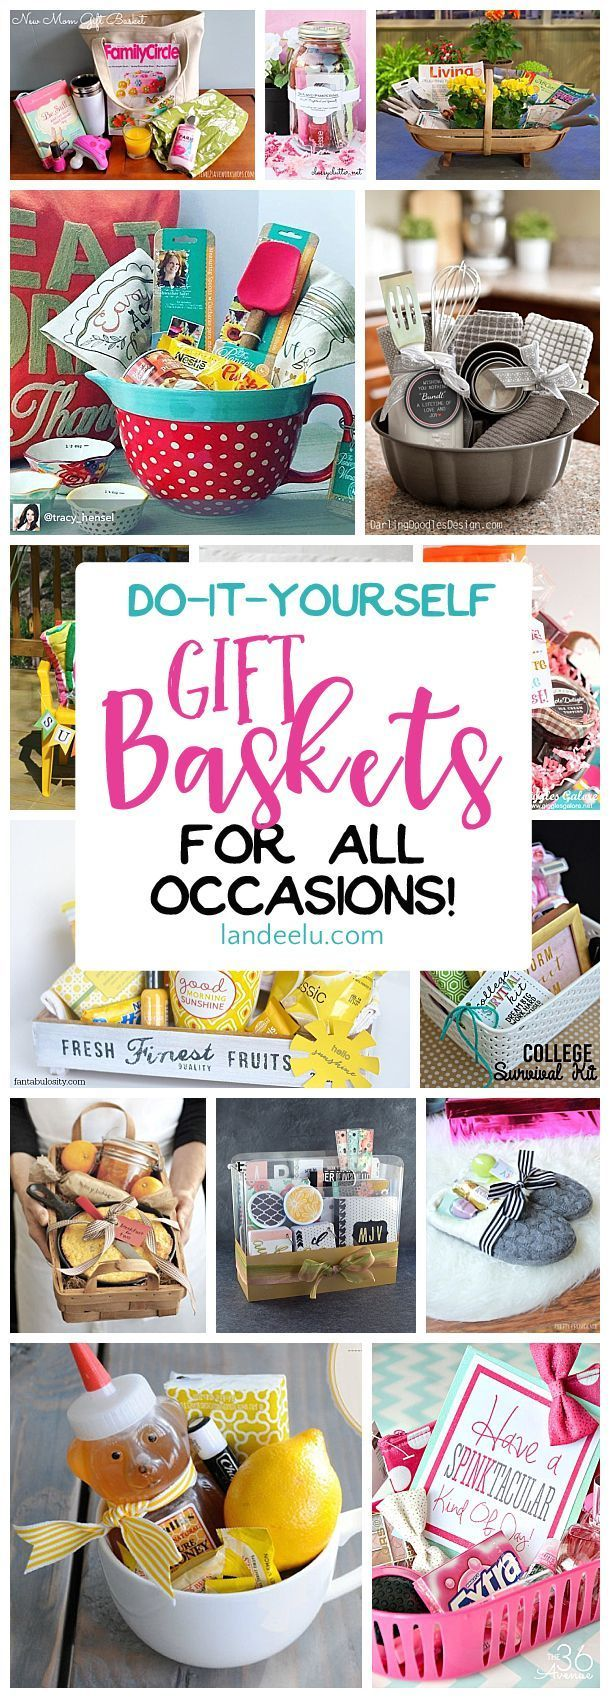 305 best diy gift ideas images on pinterest craft hand made gifts do it yourself gift basket ideas for all occasions solutioingenieria